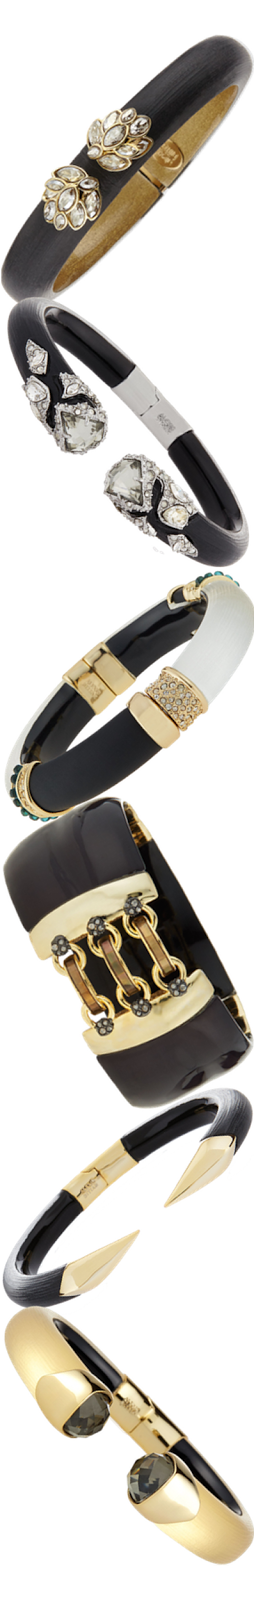 Alexis Bittar Assorted Bangles